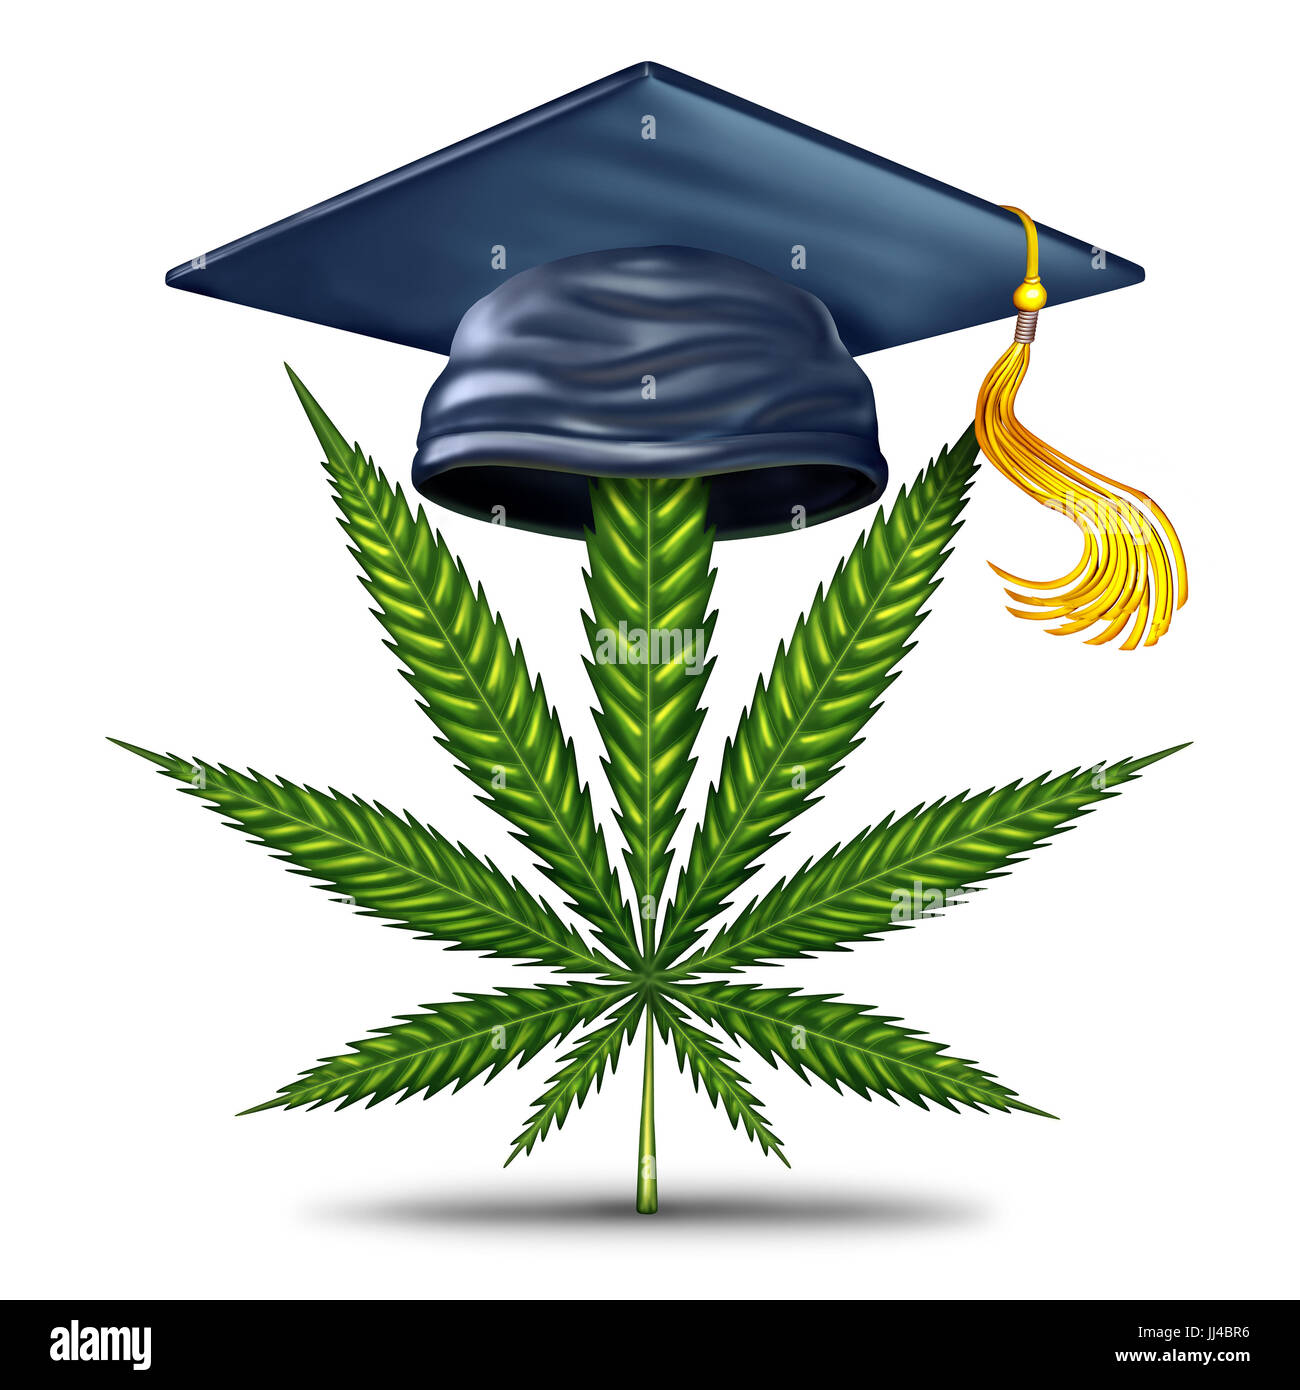 Marijuana education and cannabis information as a graduation mortar board with a green leaf as a medical weed or - Stock Image